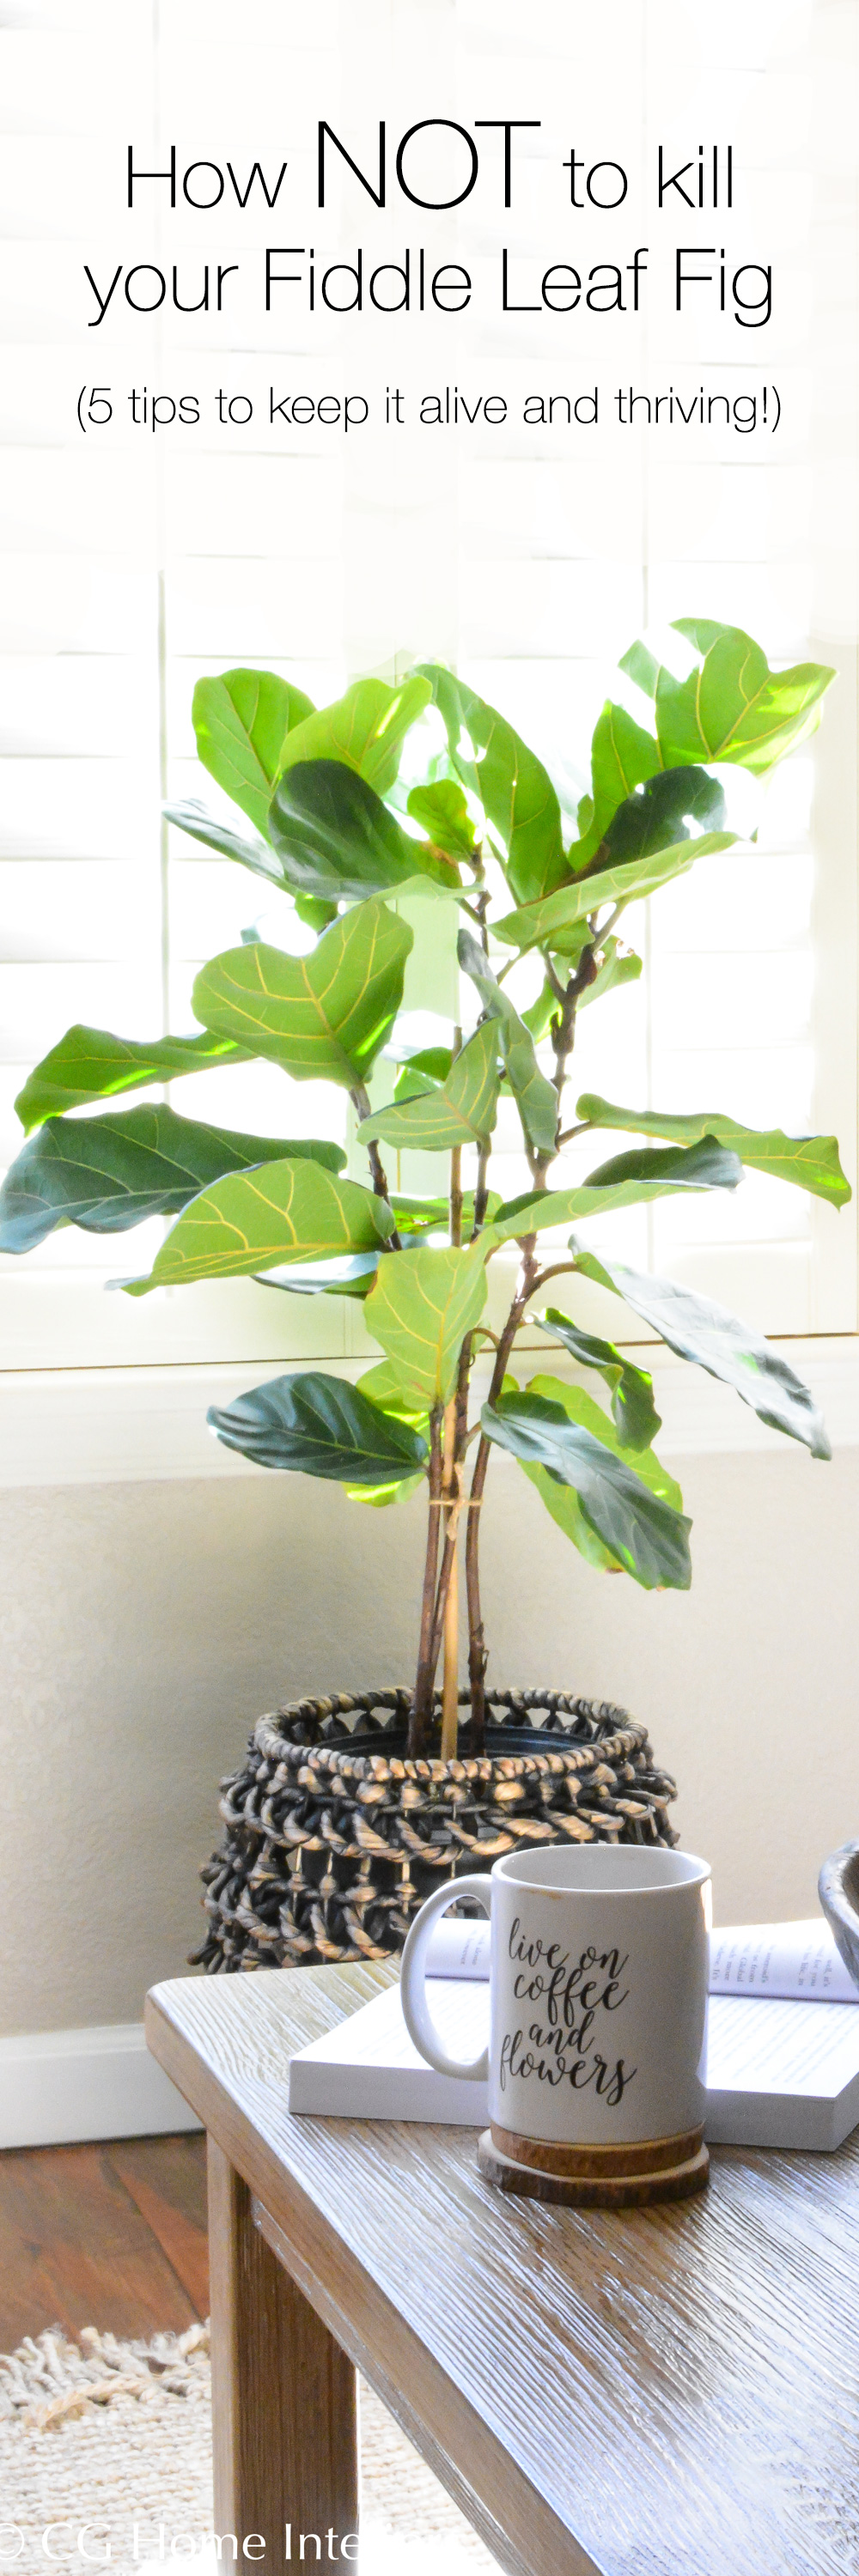 5 ways to keep your fiddle leaf fig tree alive